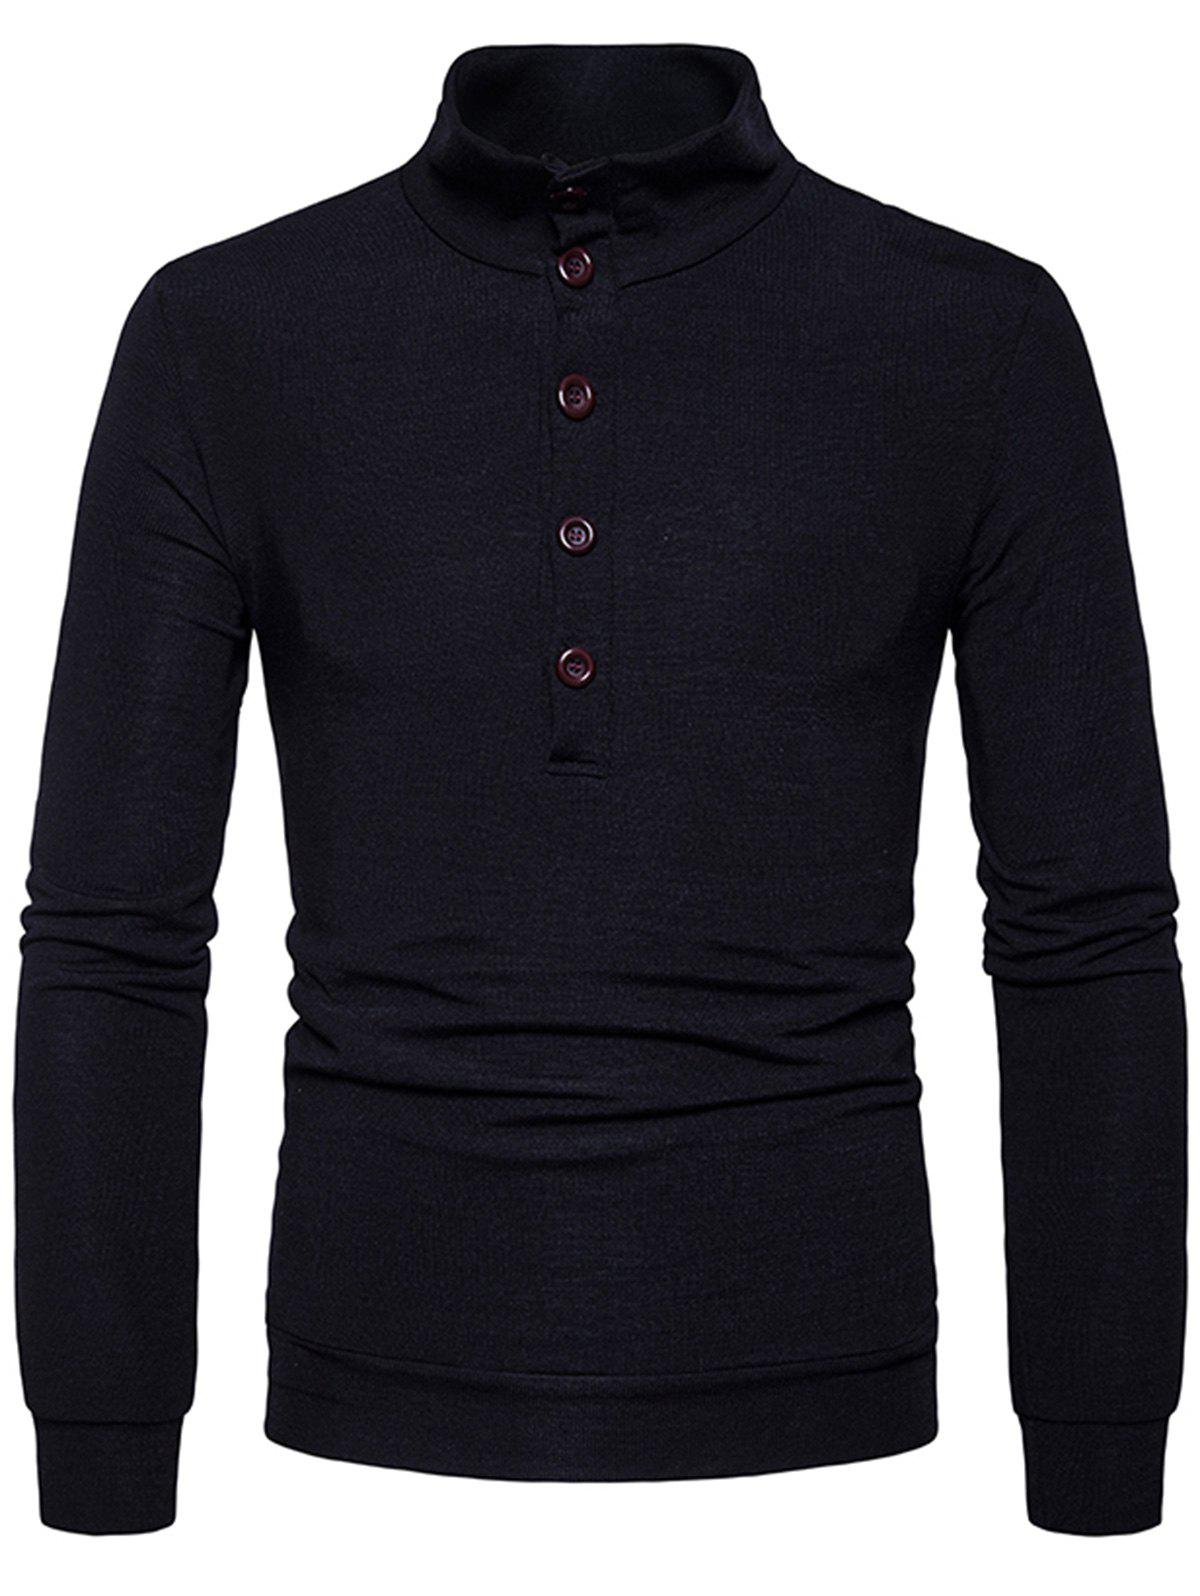 Stand Collar Buttons Long Sleeve Knitted Sweater 231126705